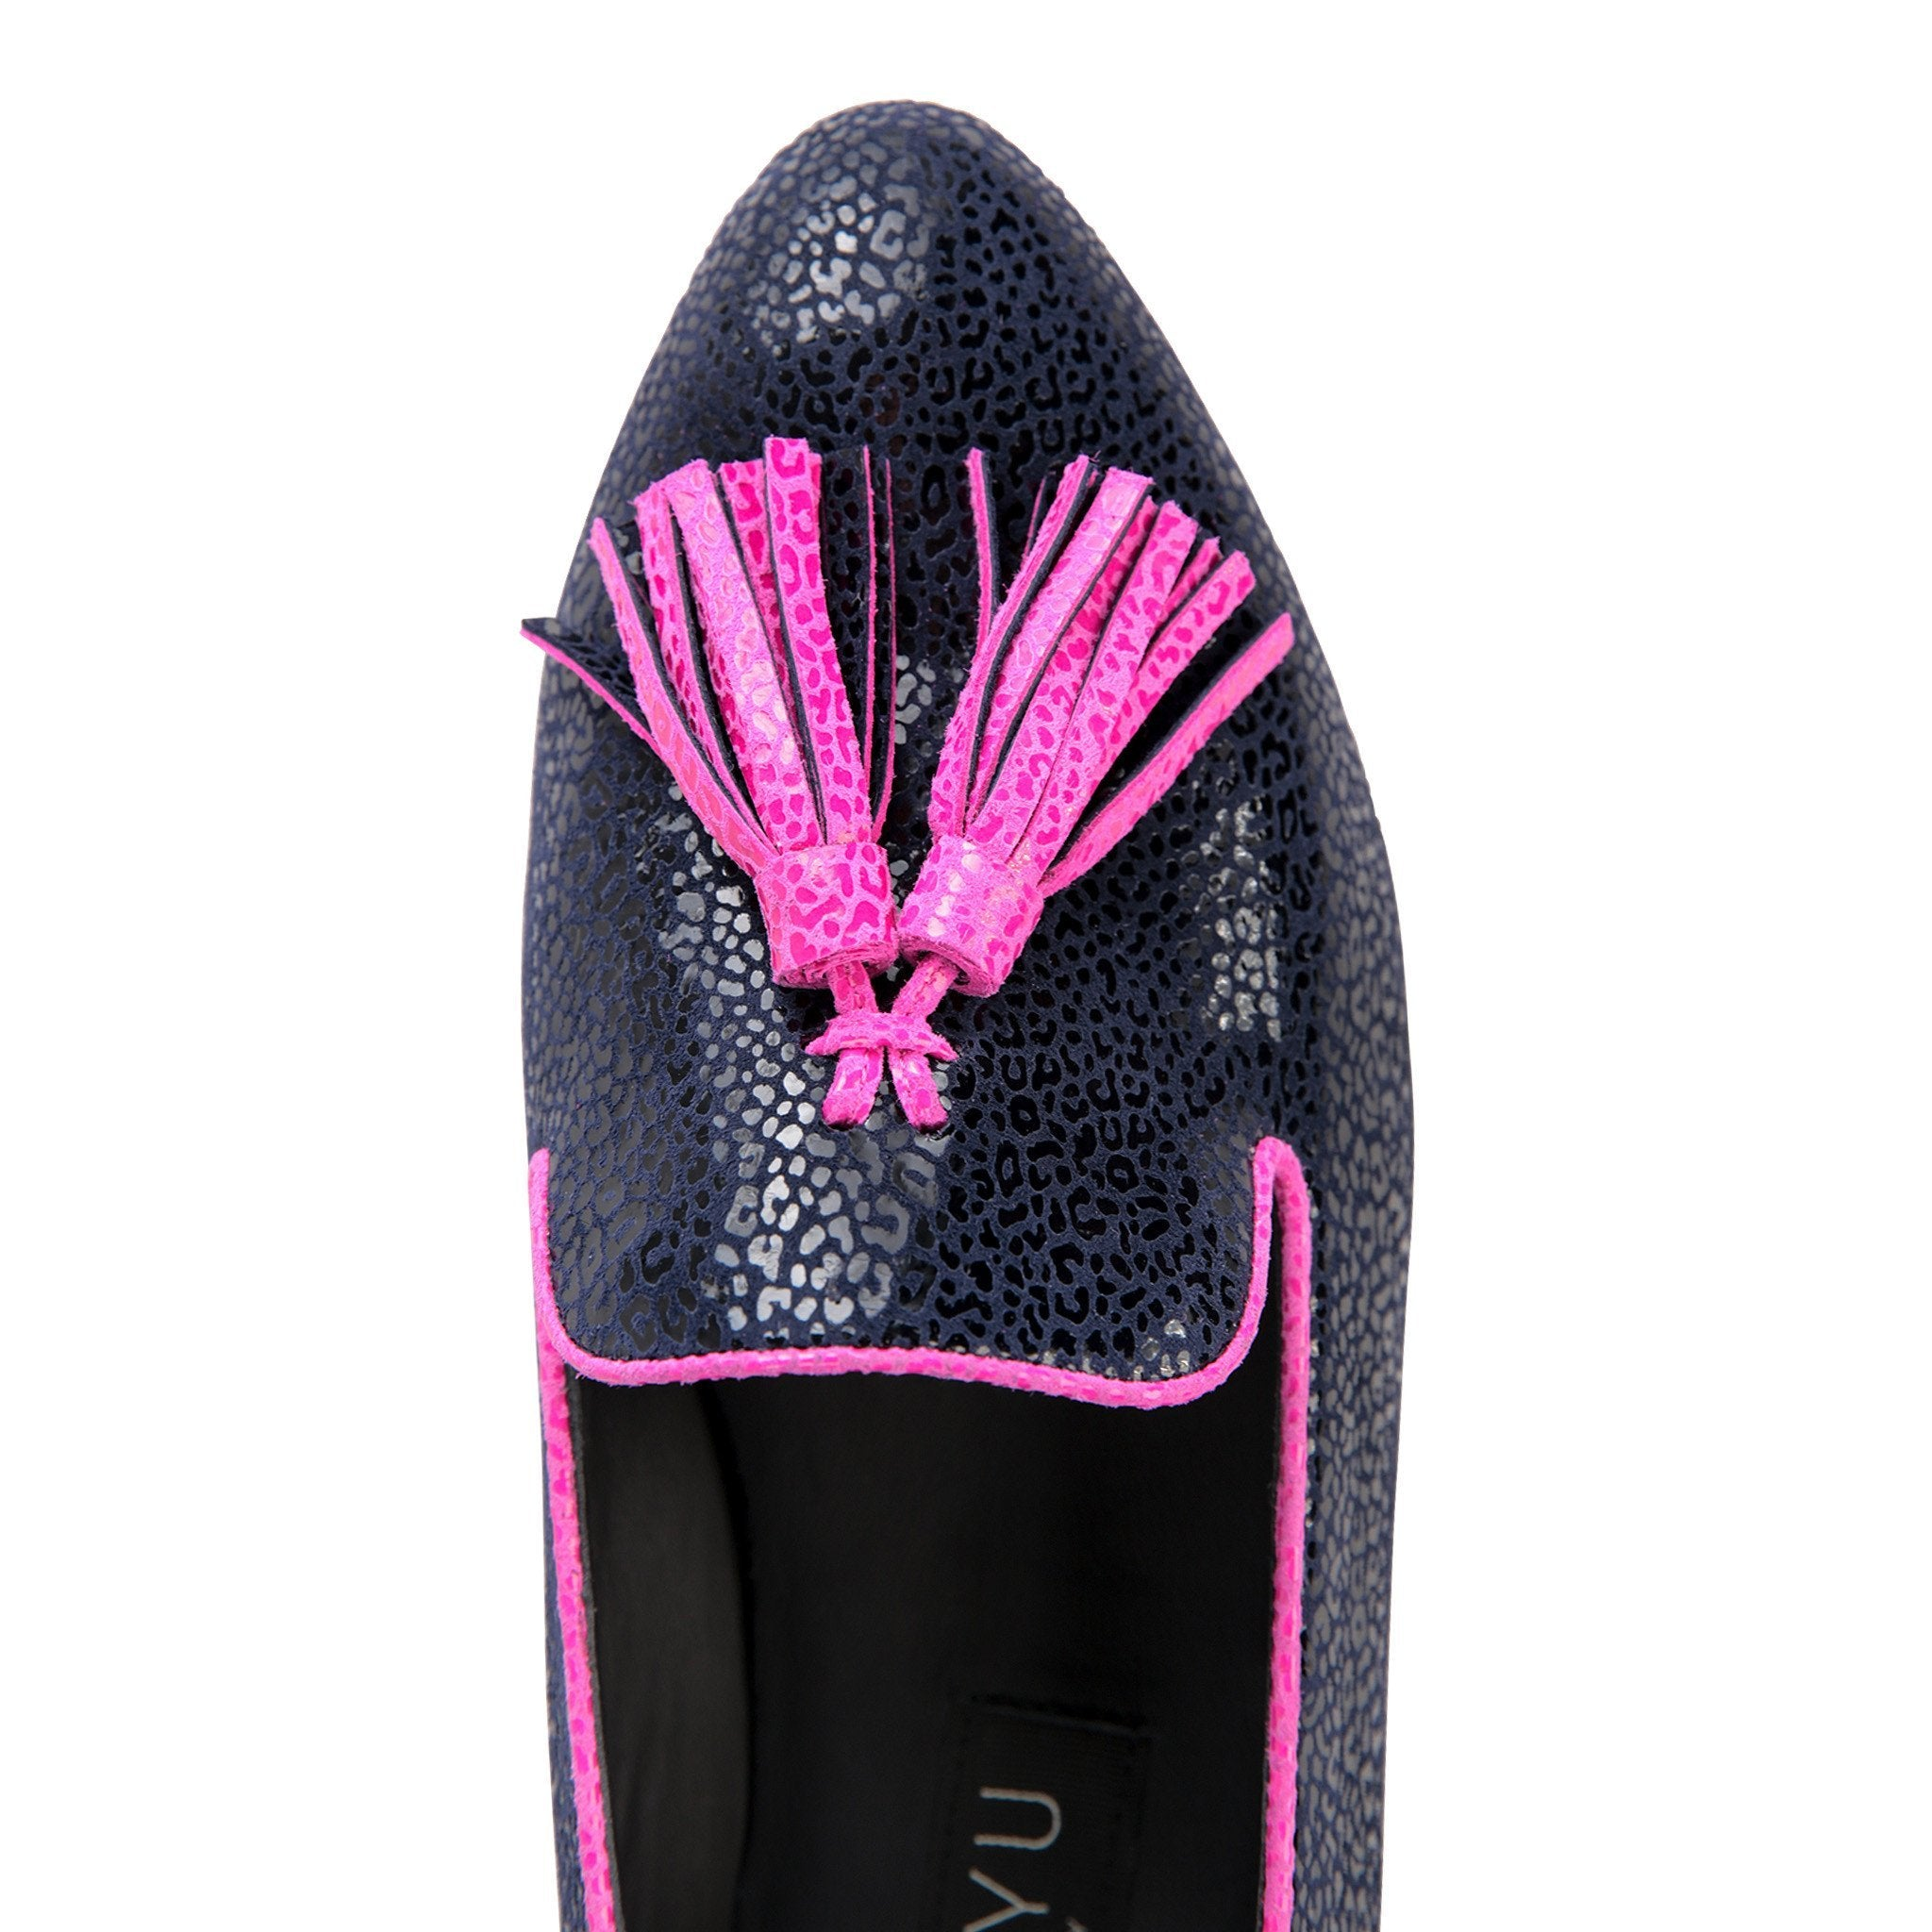 PARMA - Savannah Midnight + Mulberry, VIAJIYU - Women's Hand Made Sustainable Luxury Shoes. Made in Italy. Made to Order.